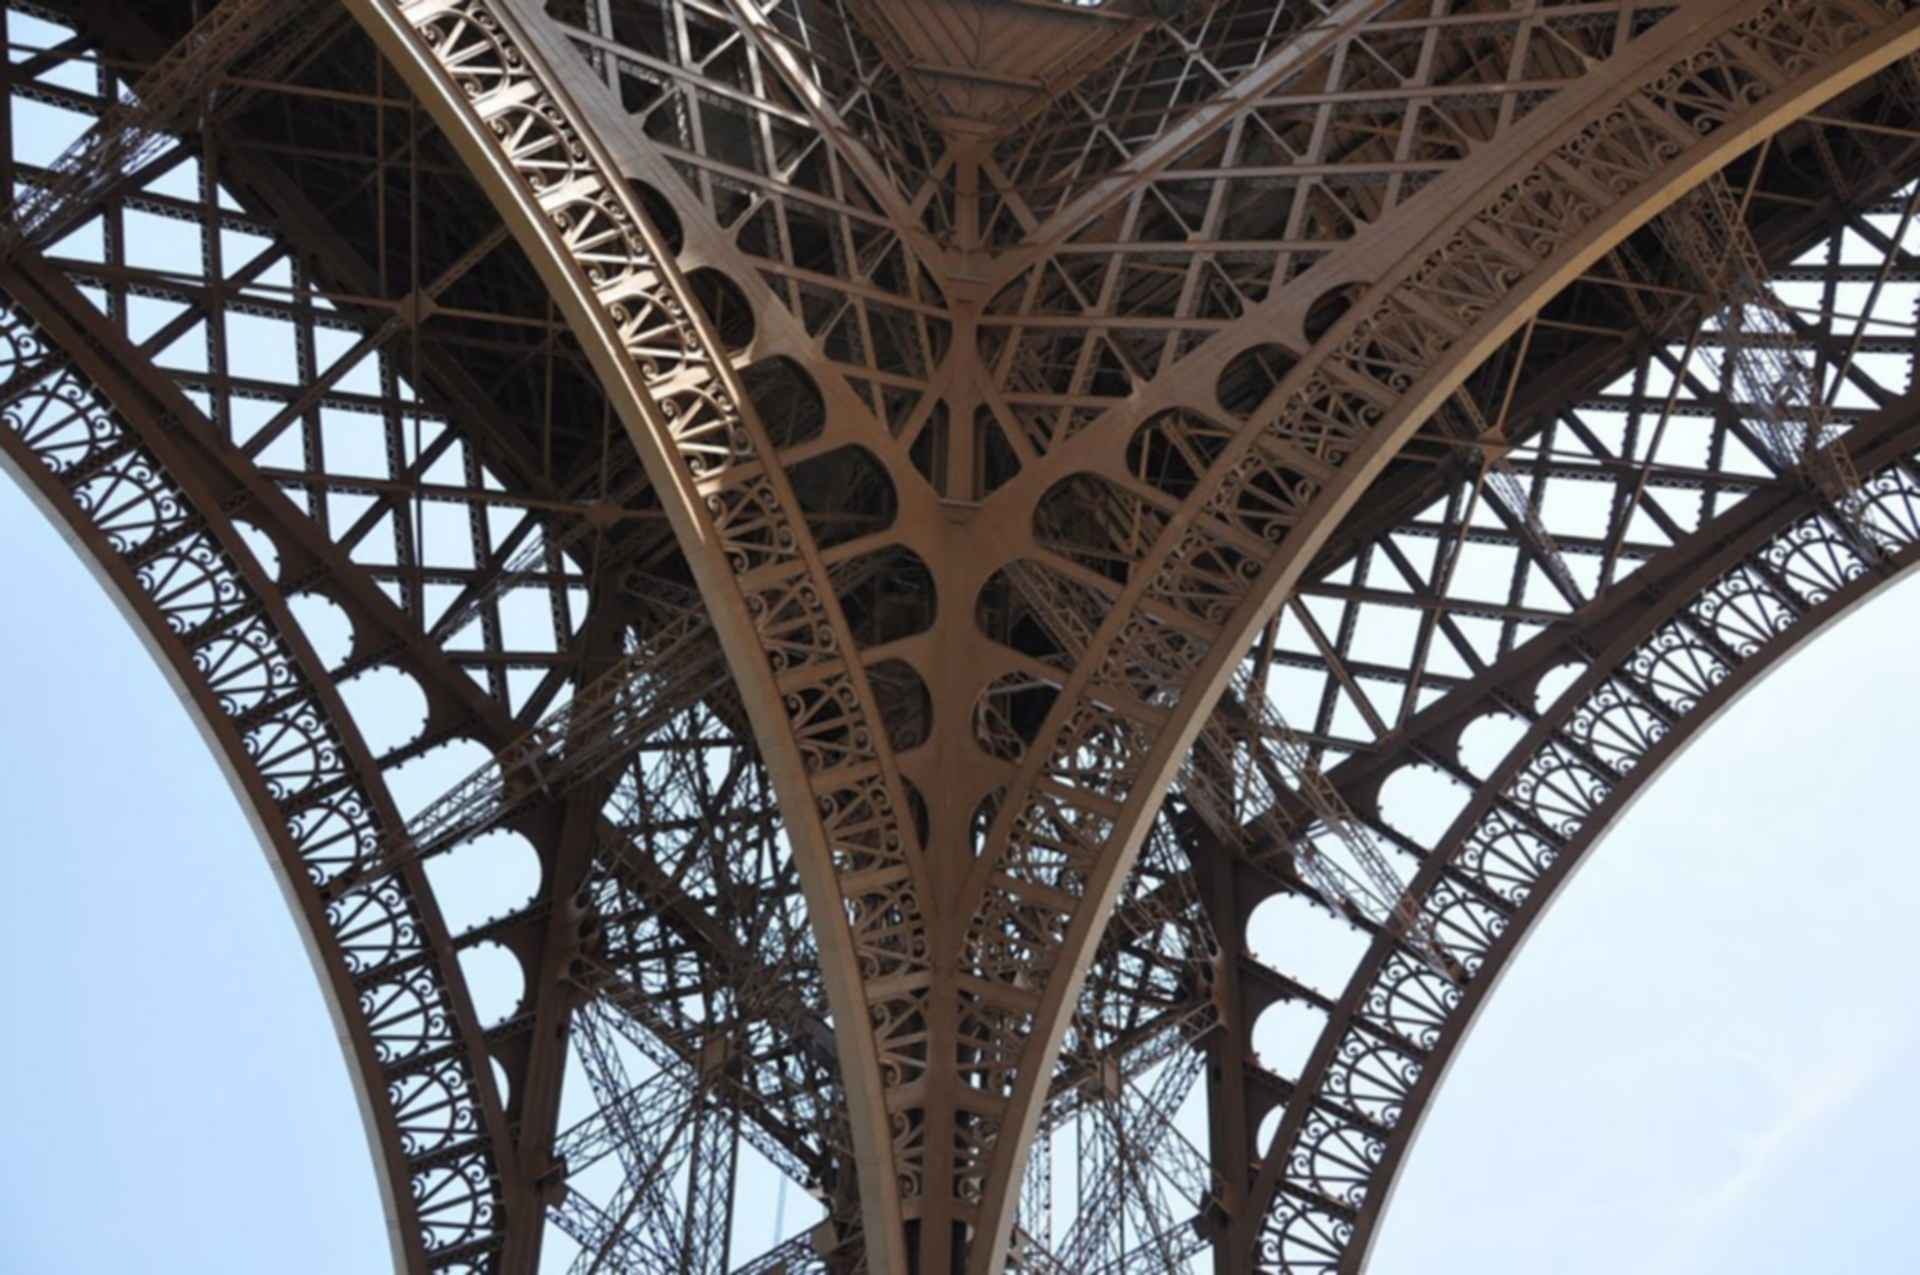 Eiffel Tower - Structure